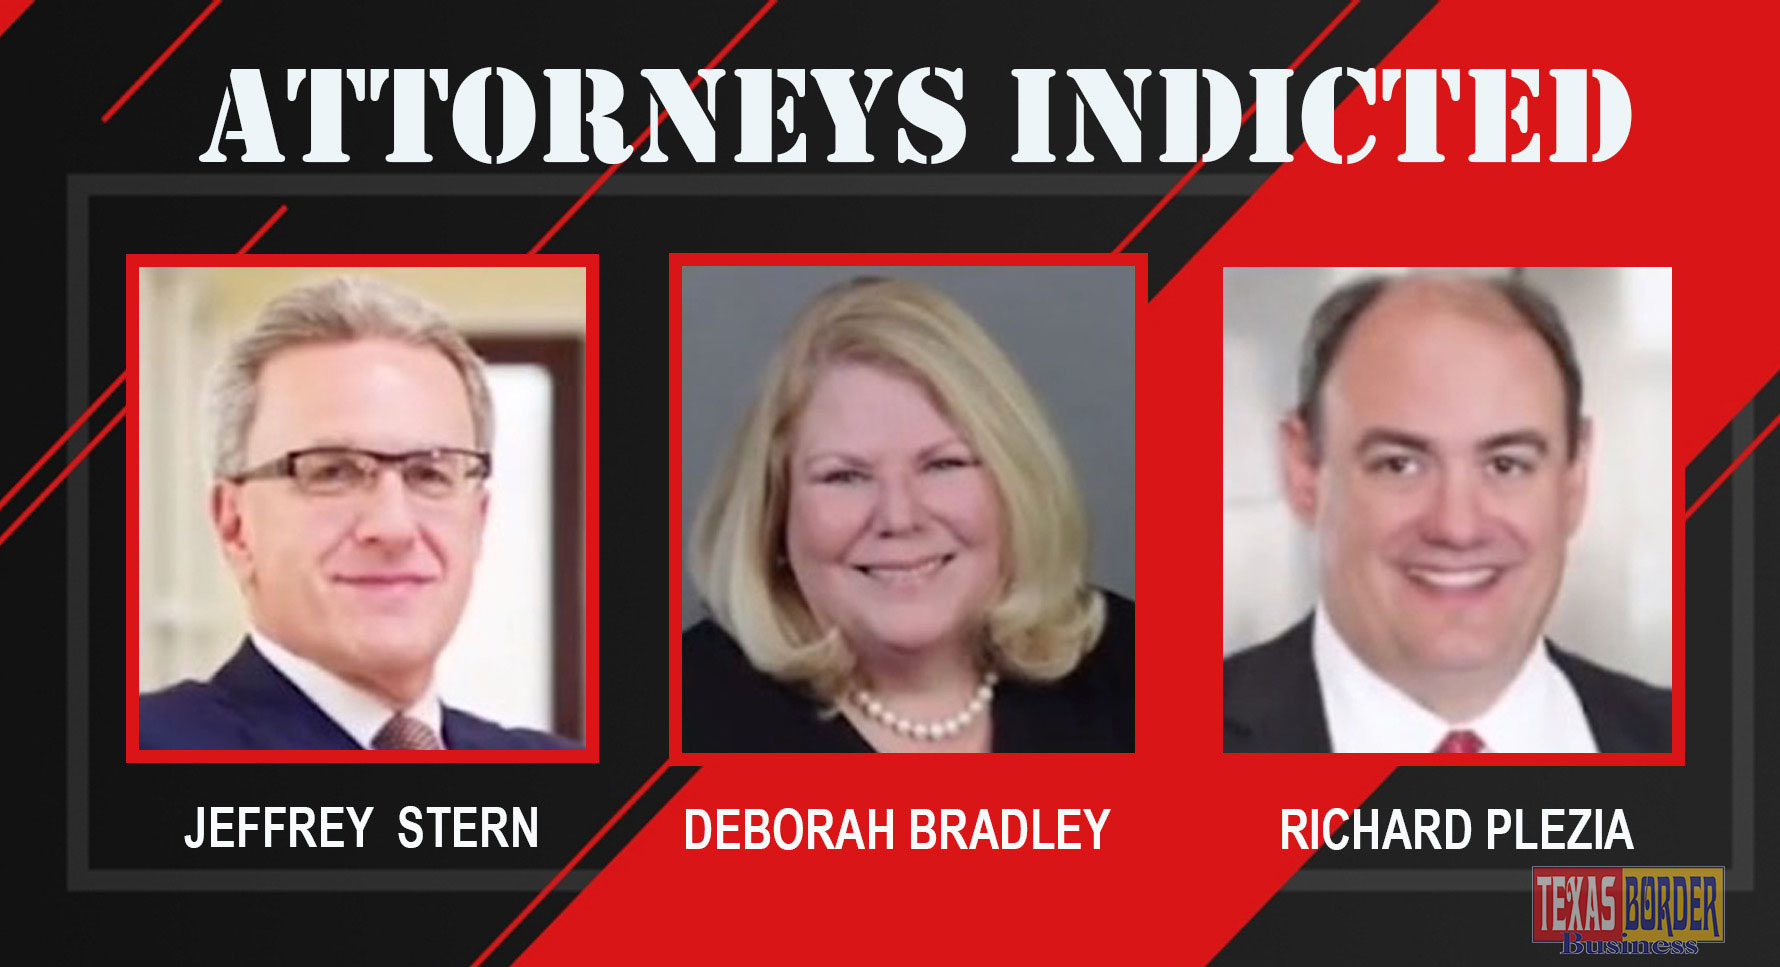 Houston Personal Injury Attorneys and Case Runners Indicted